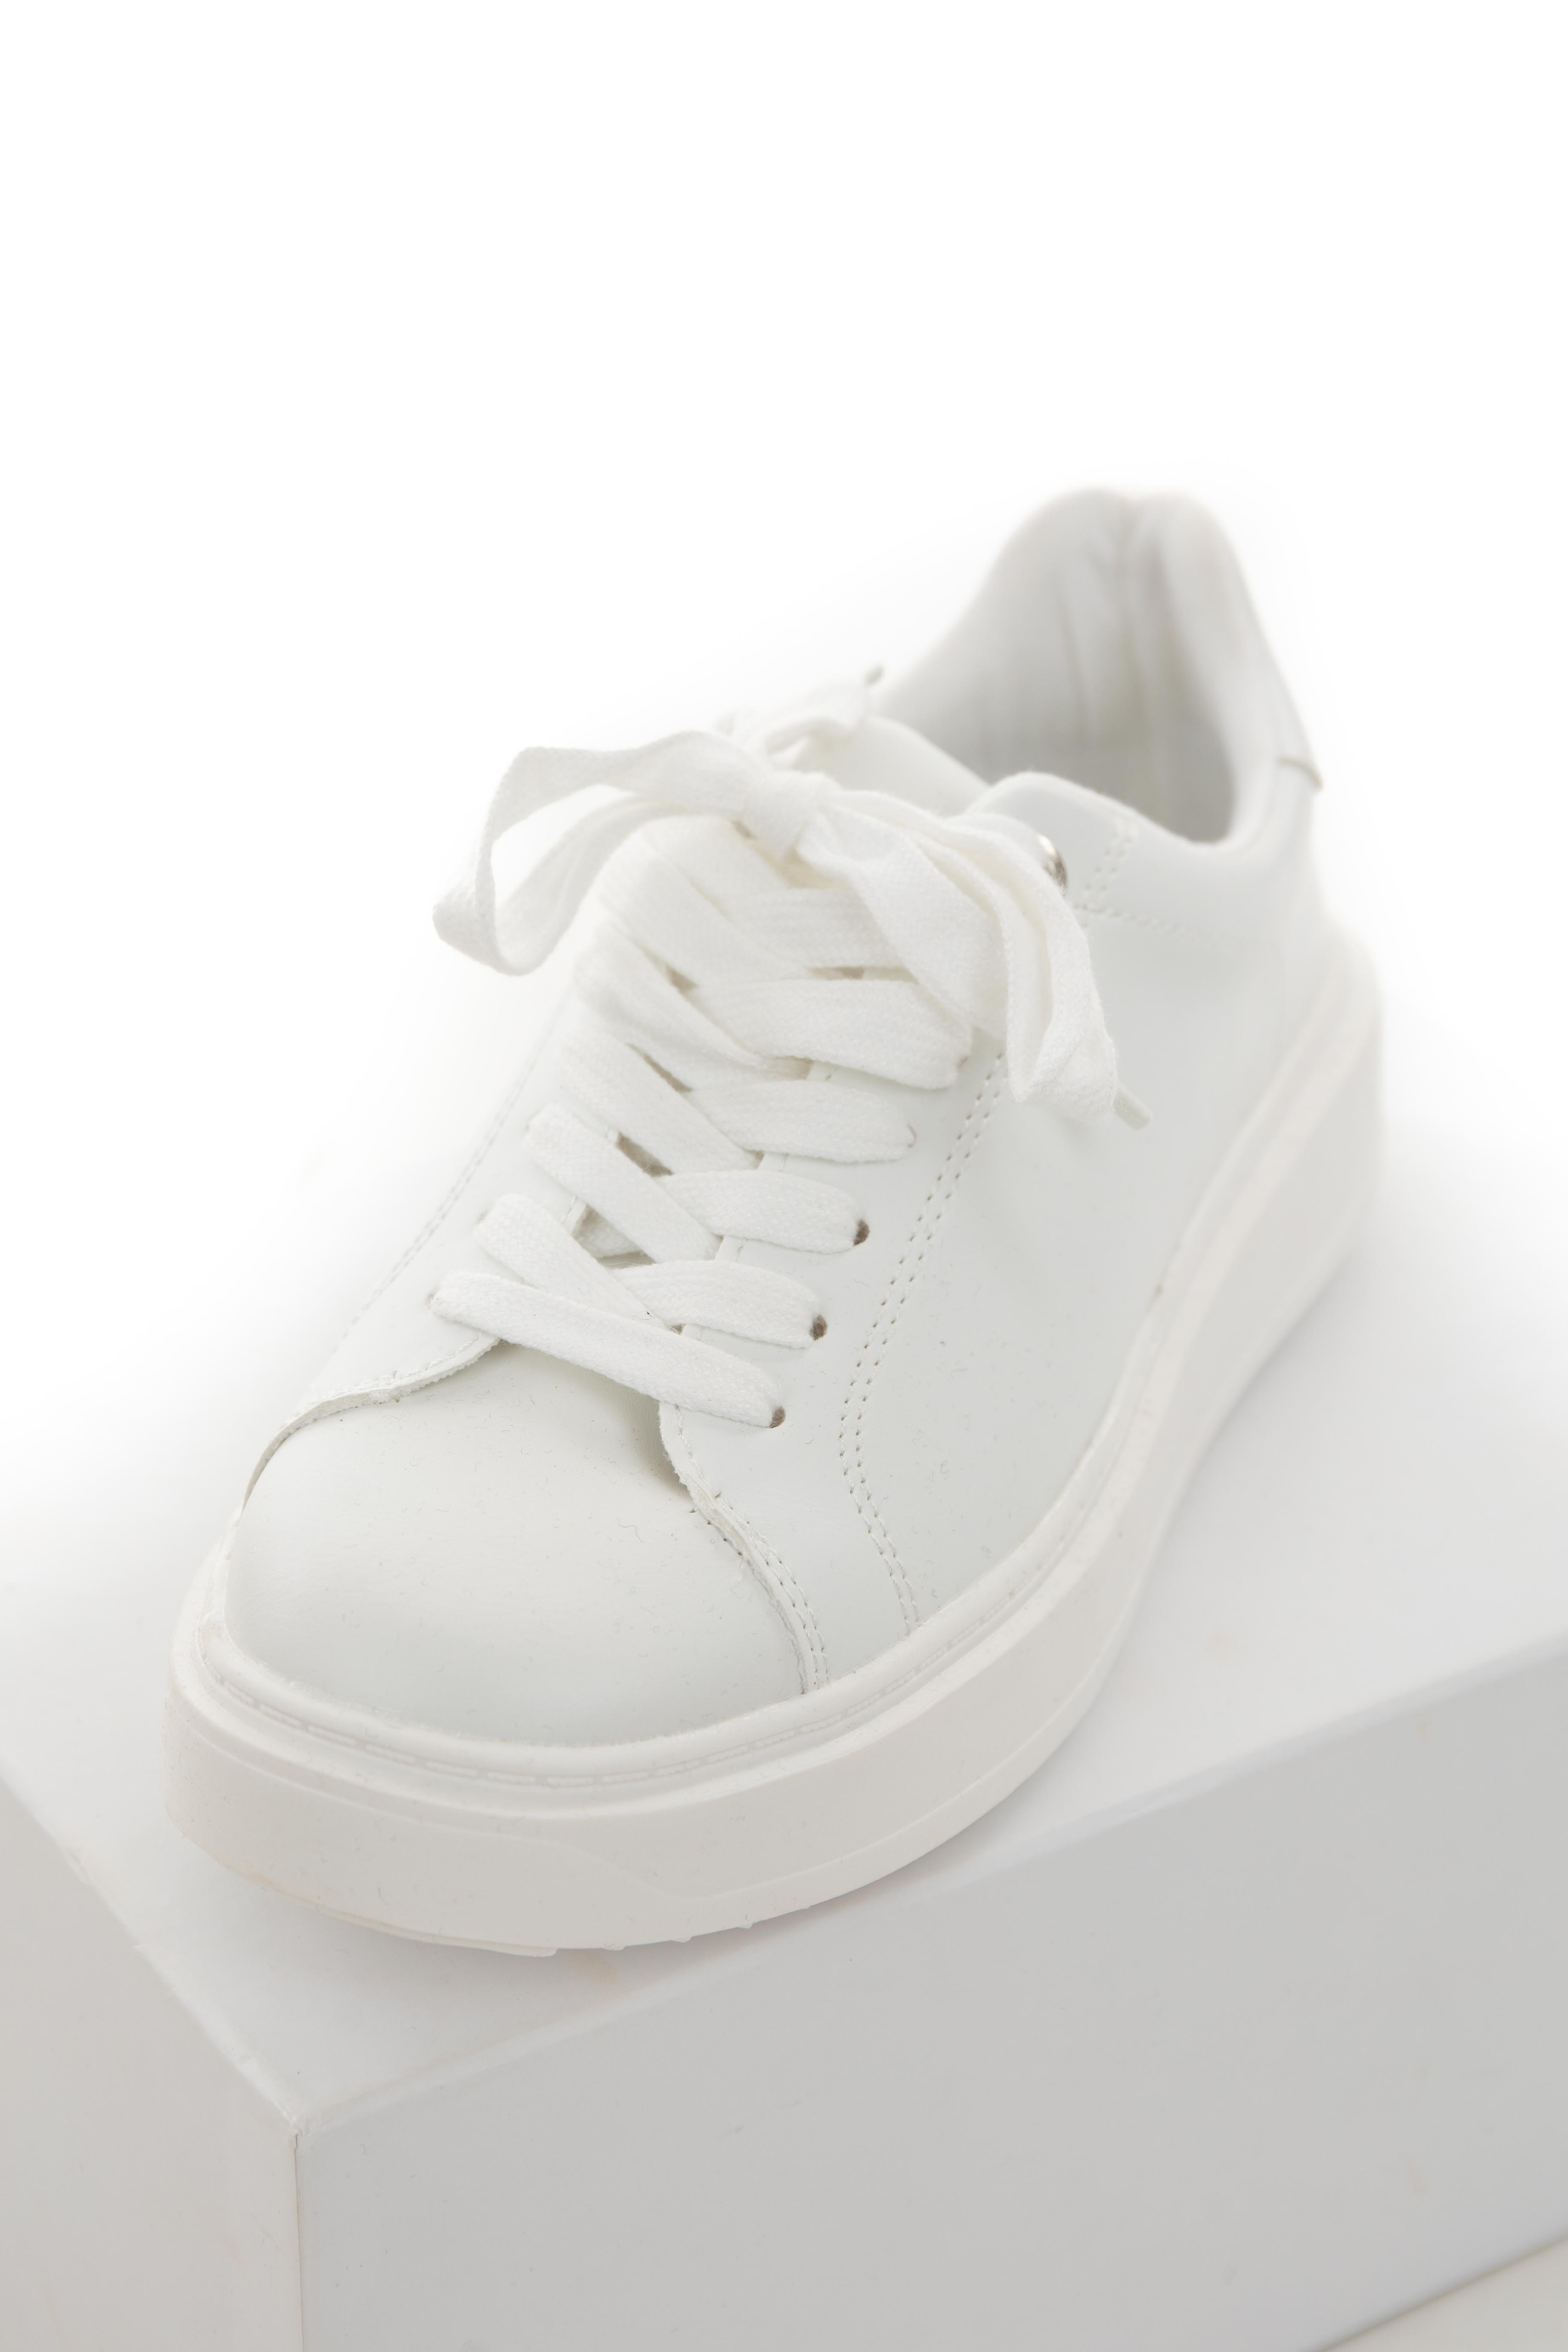 Off White Low Top Lace Up Sneakers